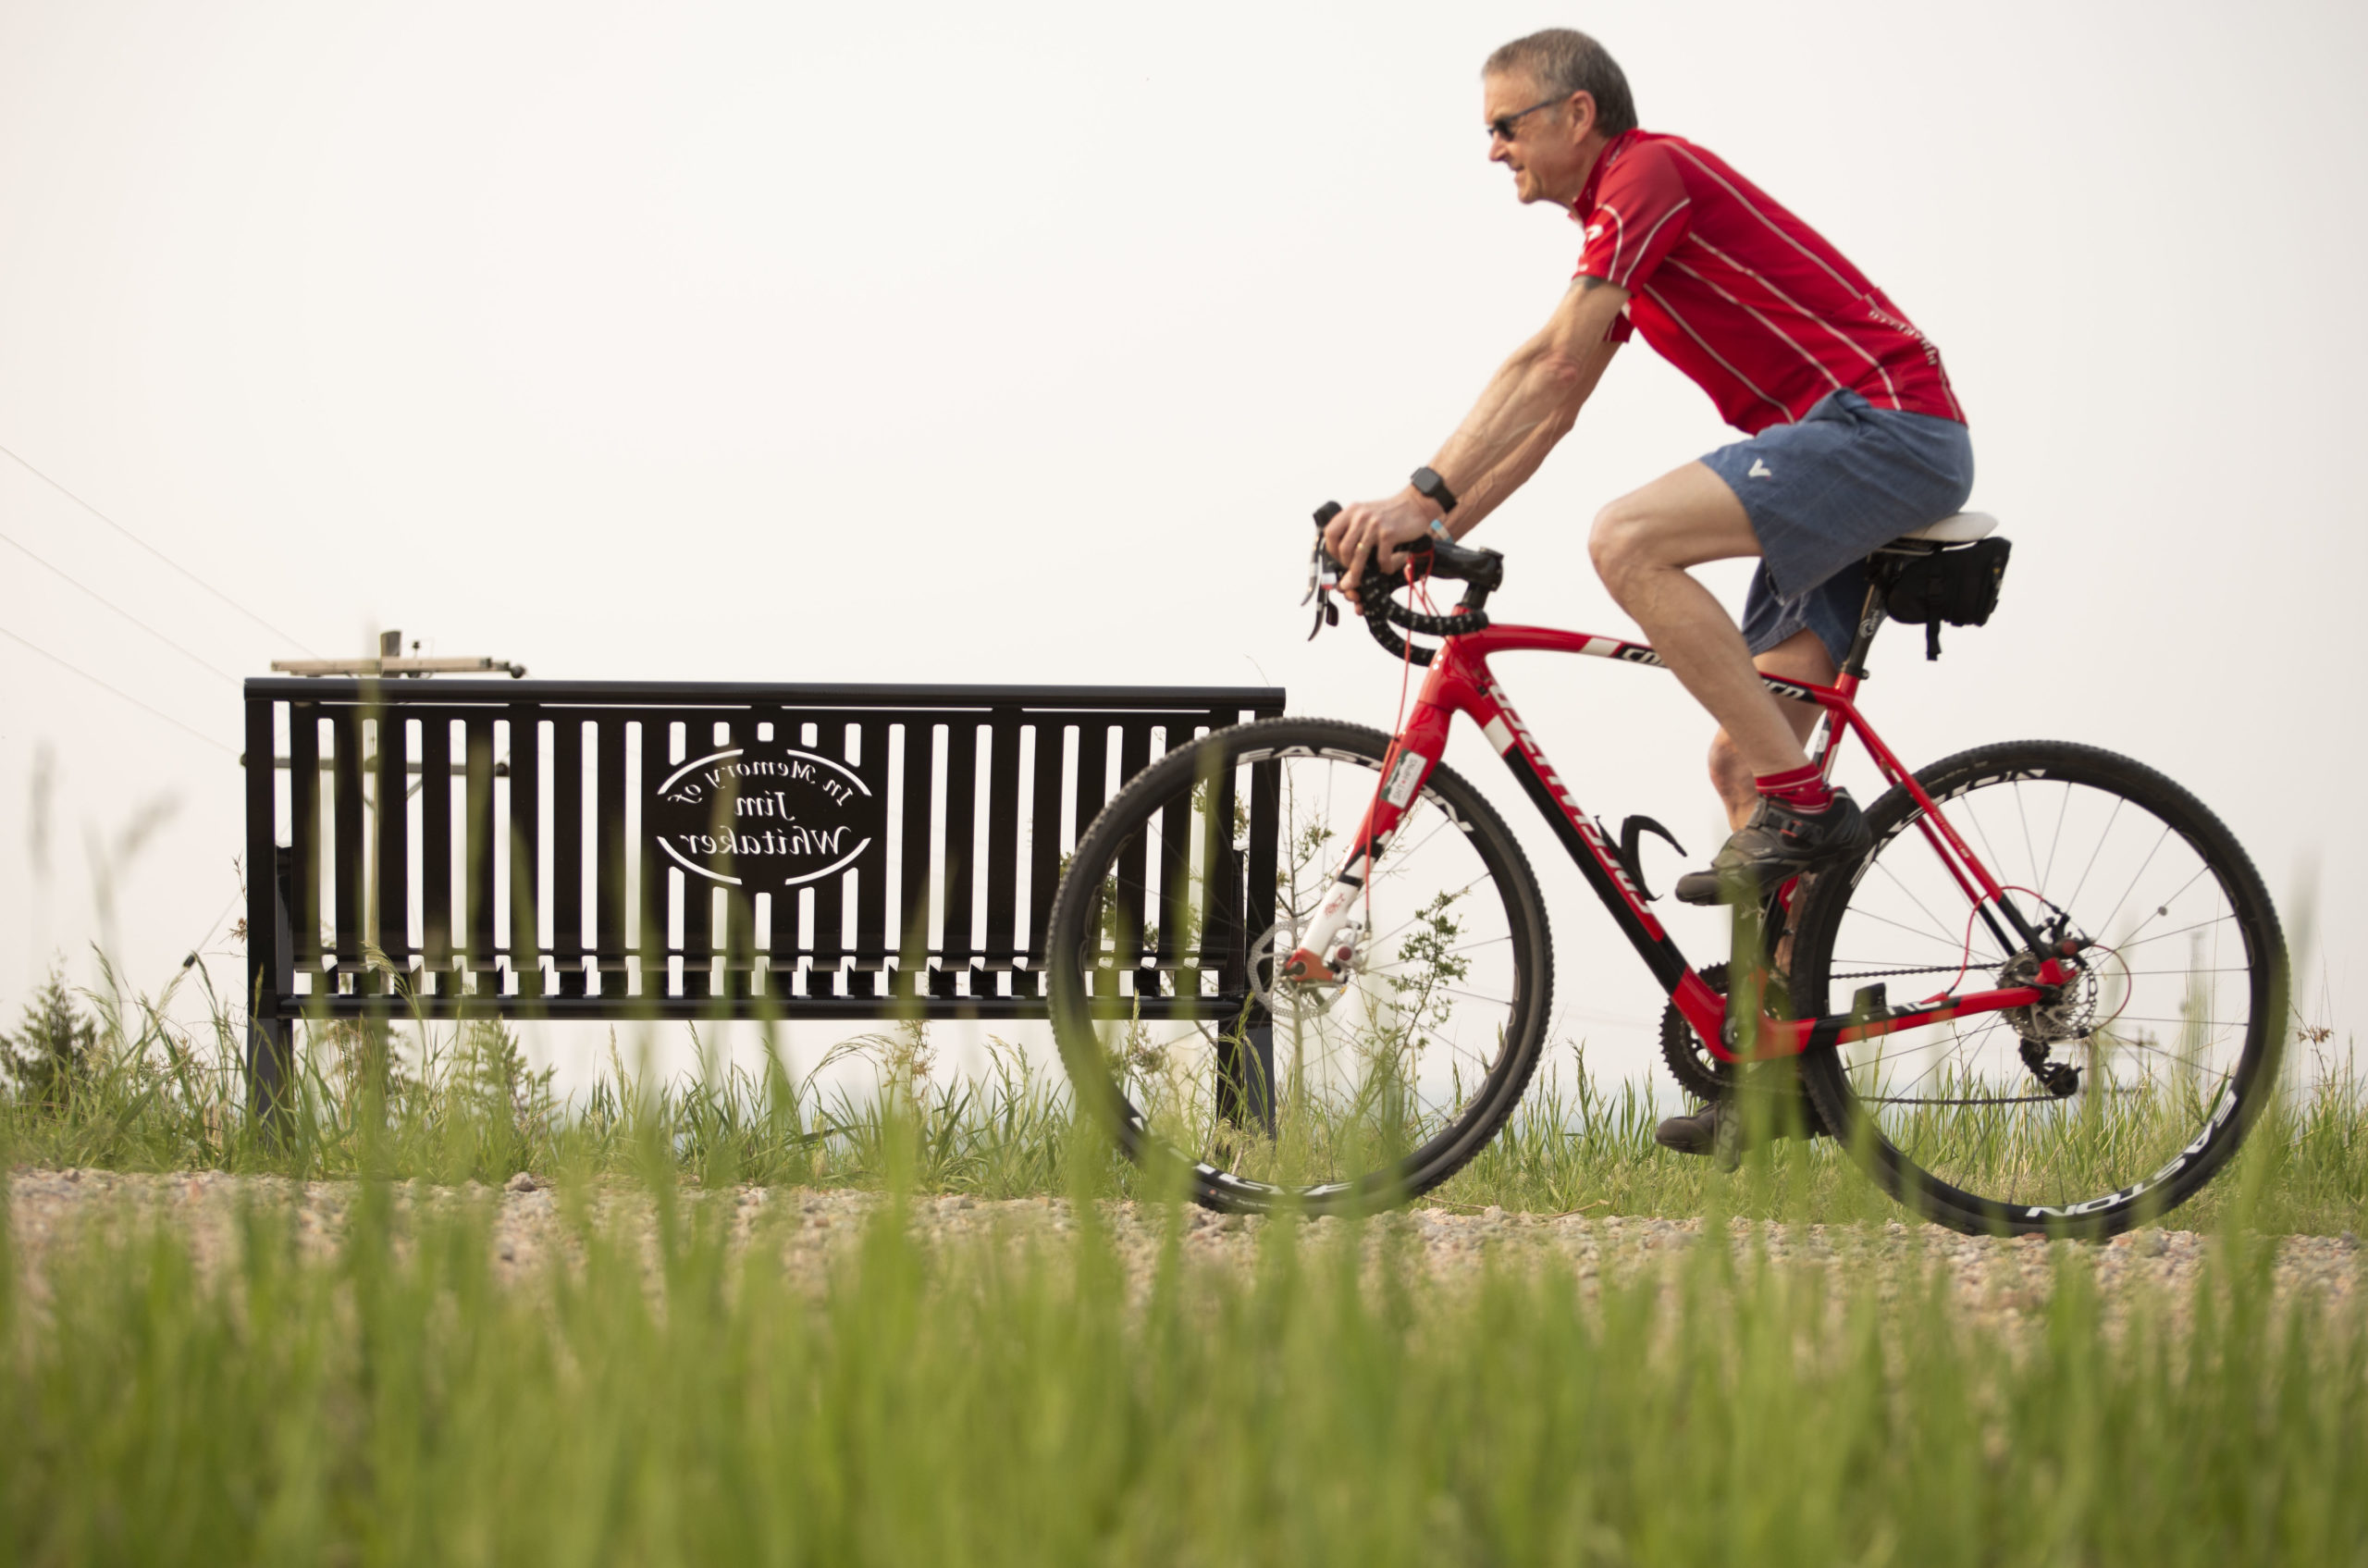 north platte trails network, nptrails, trails, north platte, nebraska, ne, north platte area sports commission, play north platte, walking, hiking, biking, whitakers way, dodge hill, north platte public power district, nppd, jim whitaker